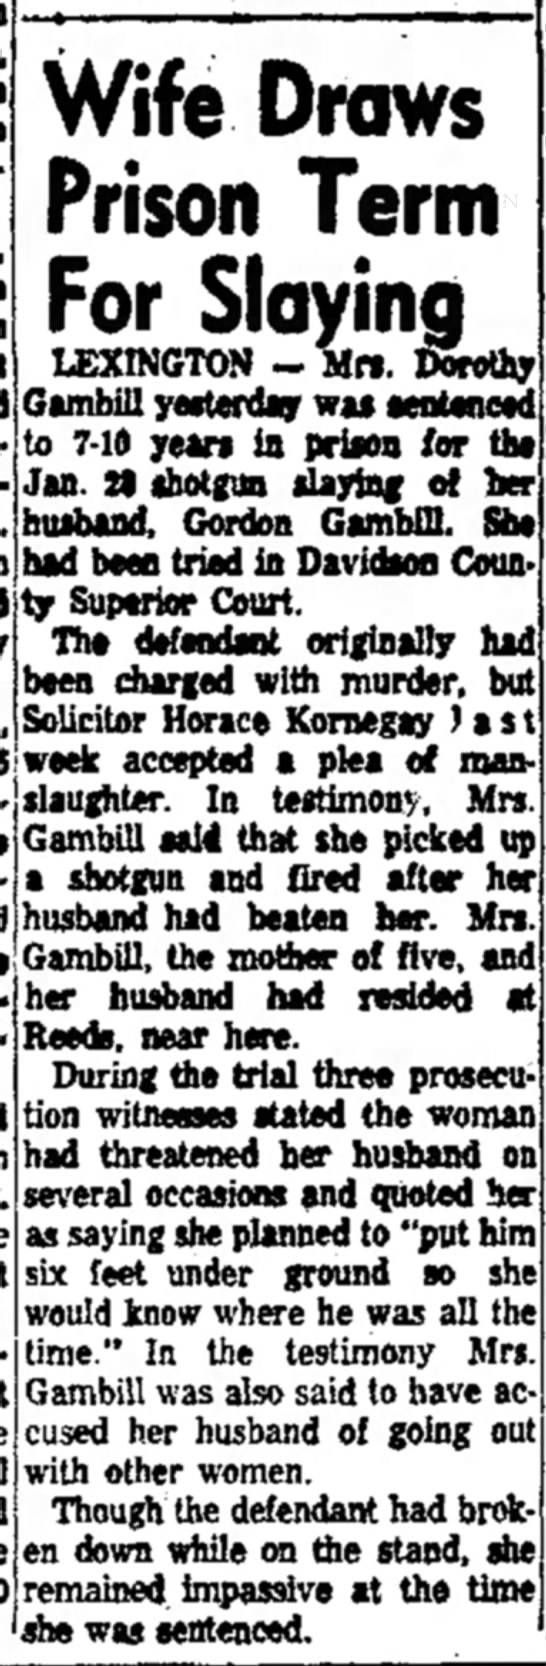 Trial results for slaying of Wm Gordon Gambill, North Carolina -